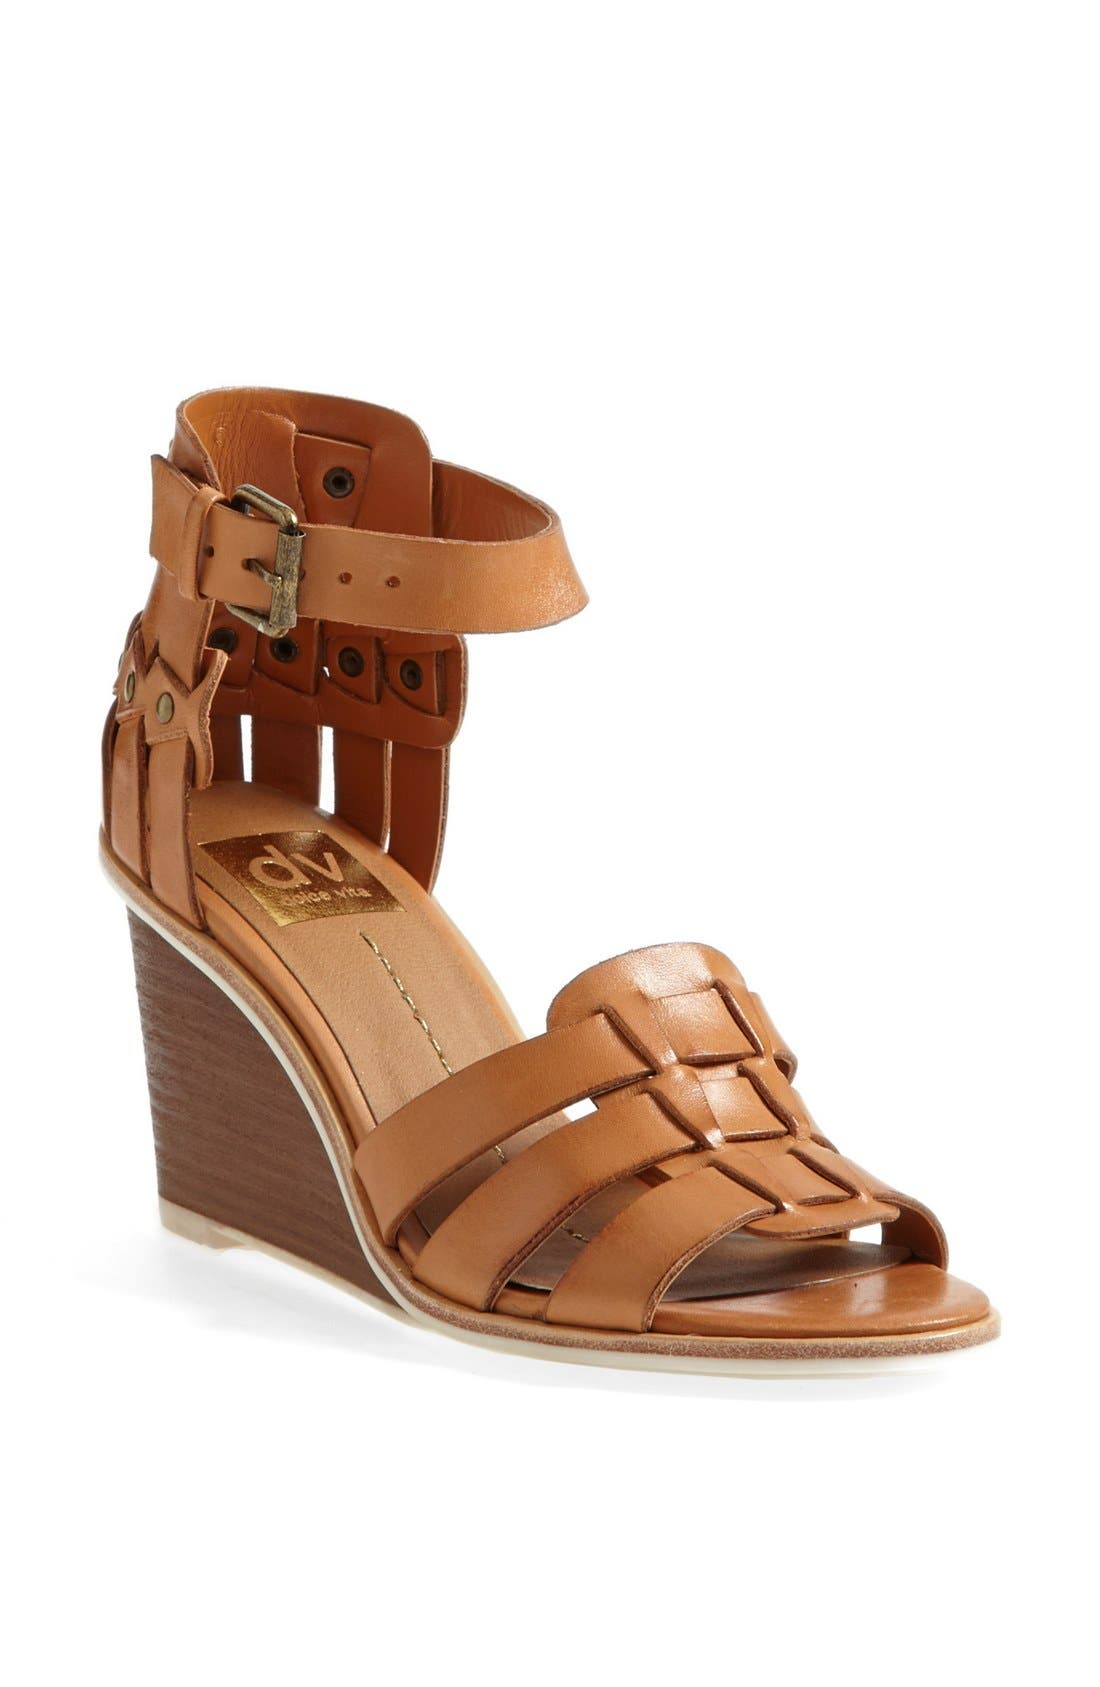 Alternate Image 1 Selected - DV by Dolce Vita 'Cho' Wedge Sandal (Nordstrom Exclusive)